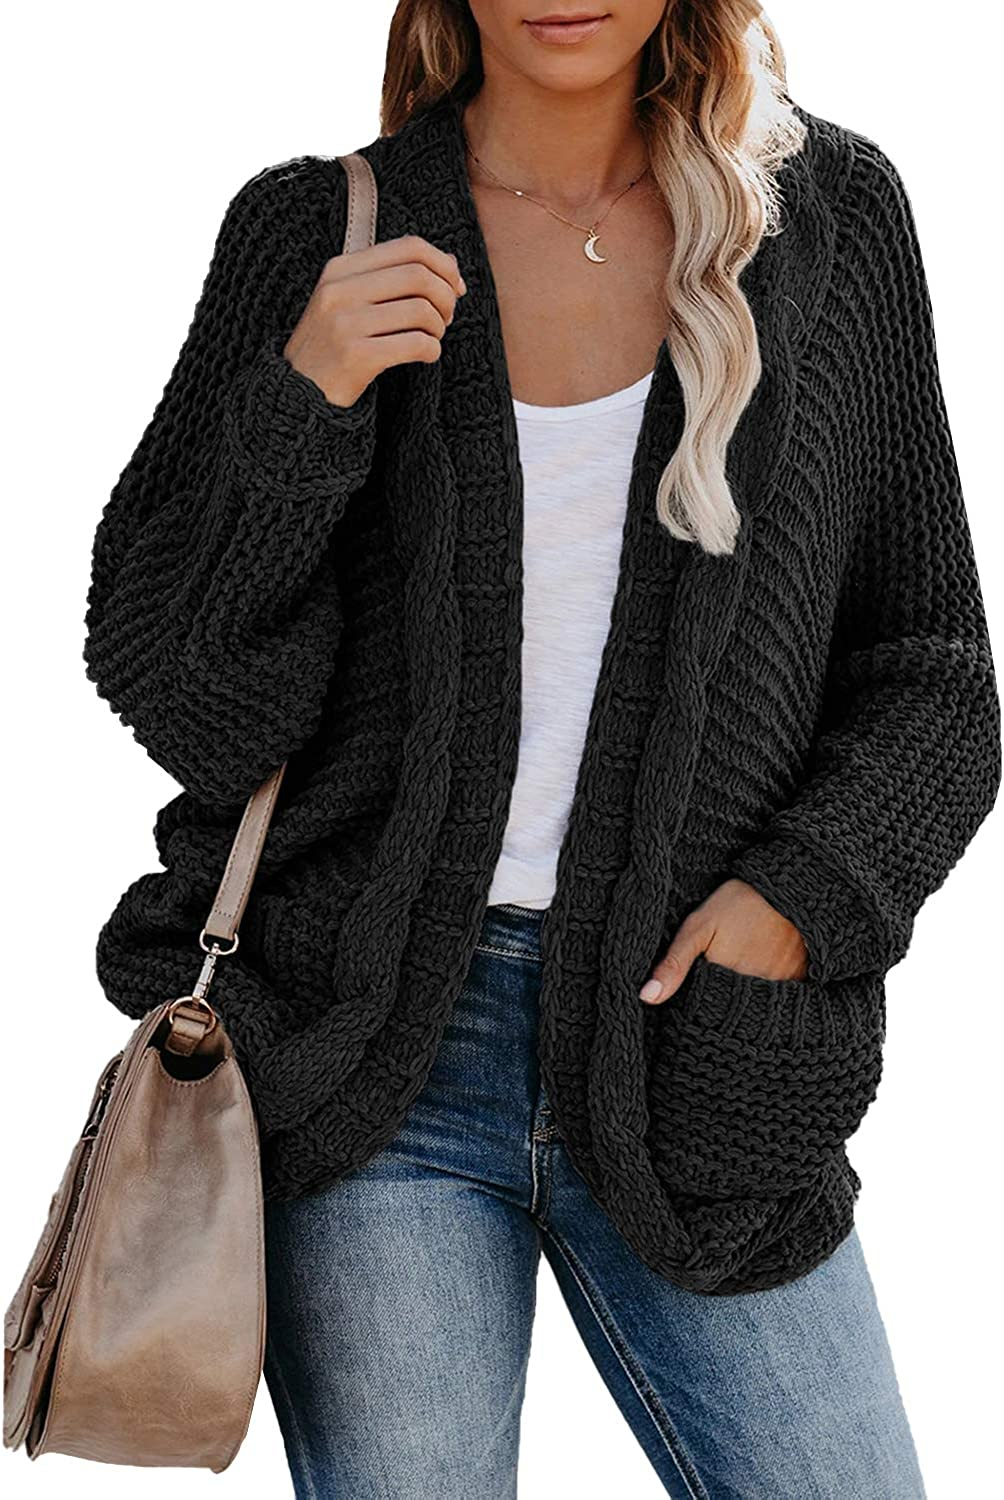 Astylish Women Open Front Long Sleeve Chunky Knit Cardigan Sweaters with Pockets